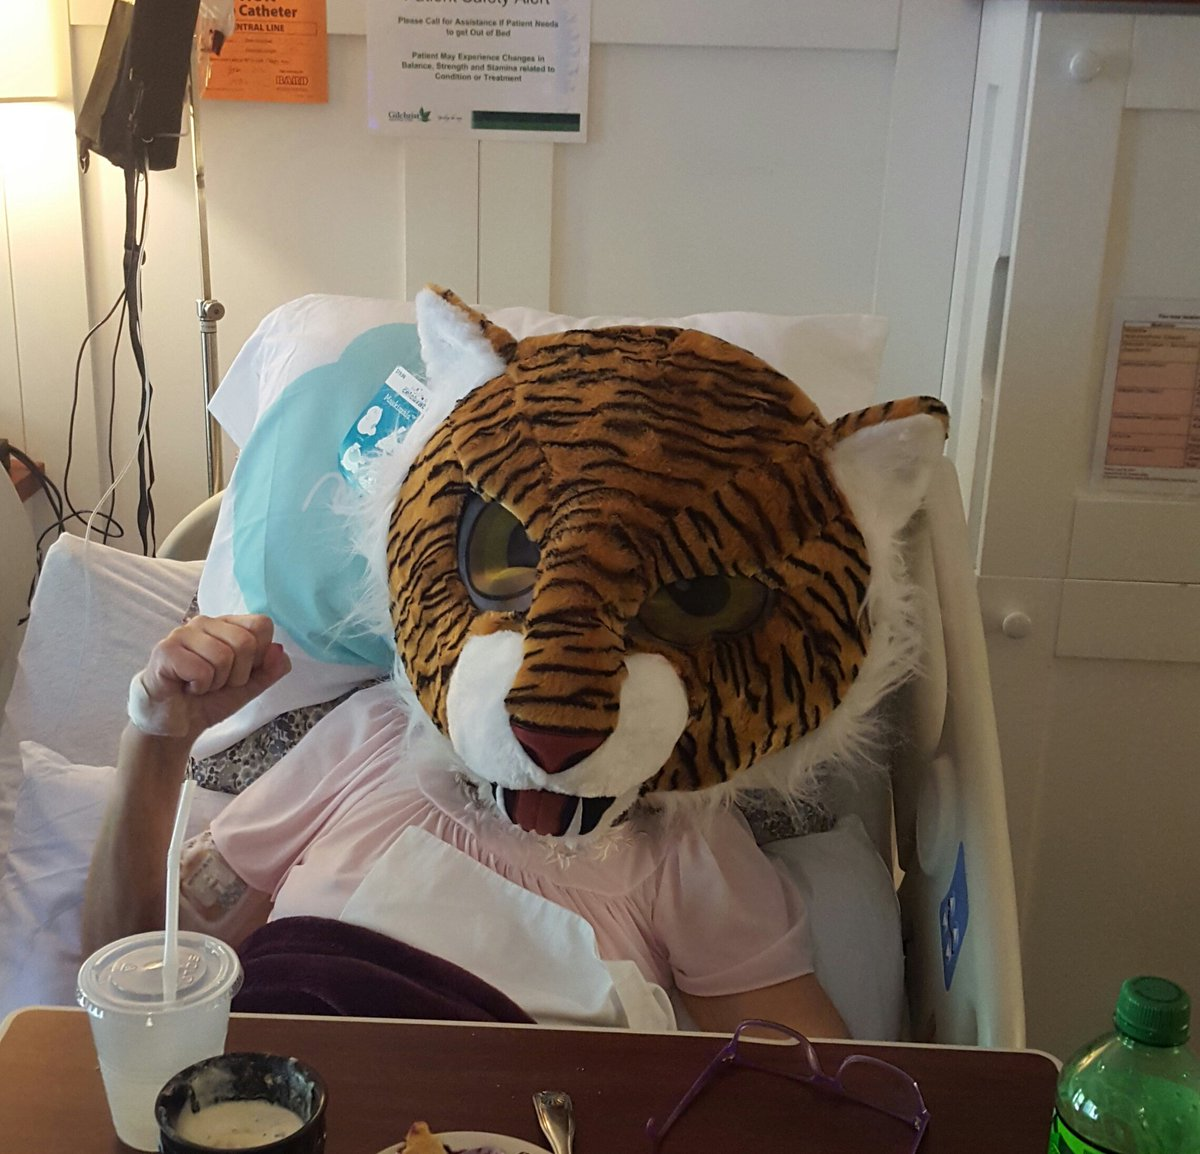 #maskimals My mom battling colon cancer and still has a sense of humor. #Toughestwomanonearth<br>http://pic.twitter.com/1CCWrtcX9c